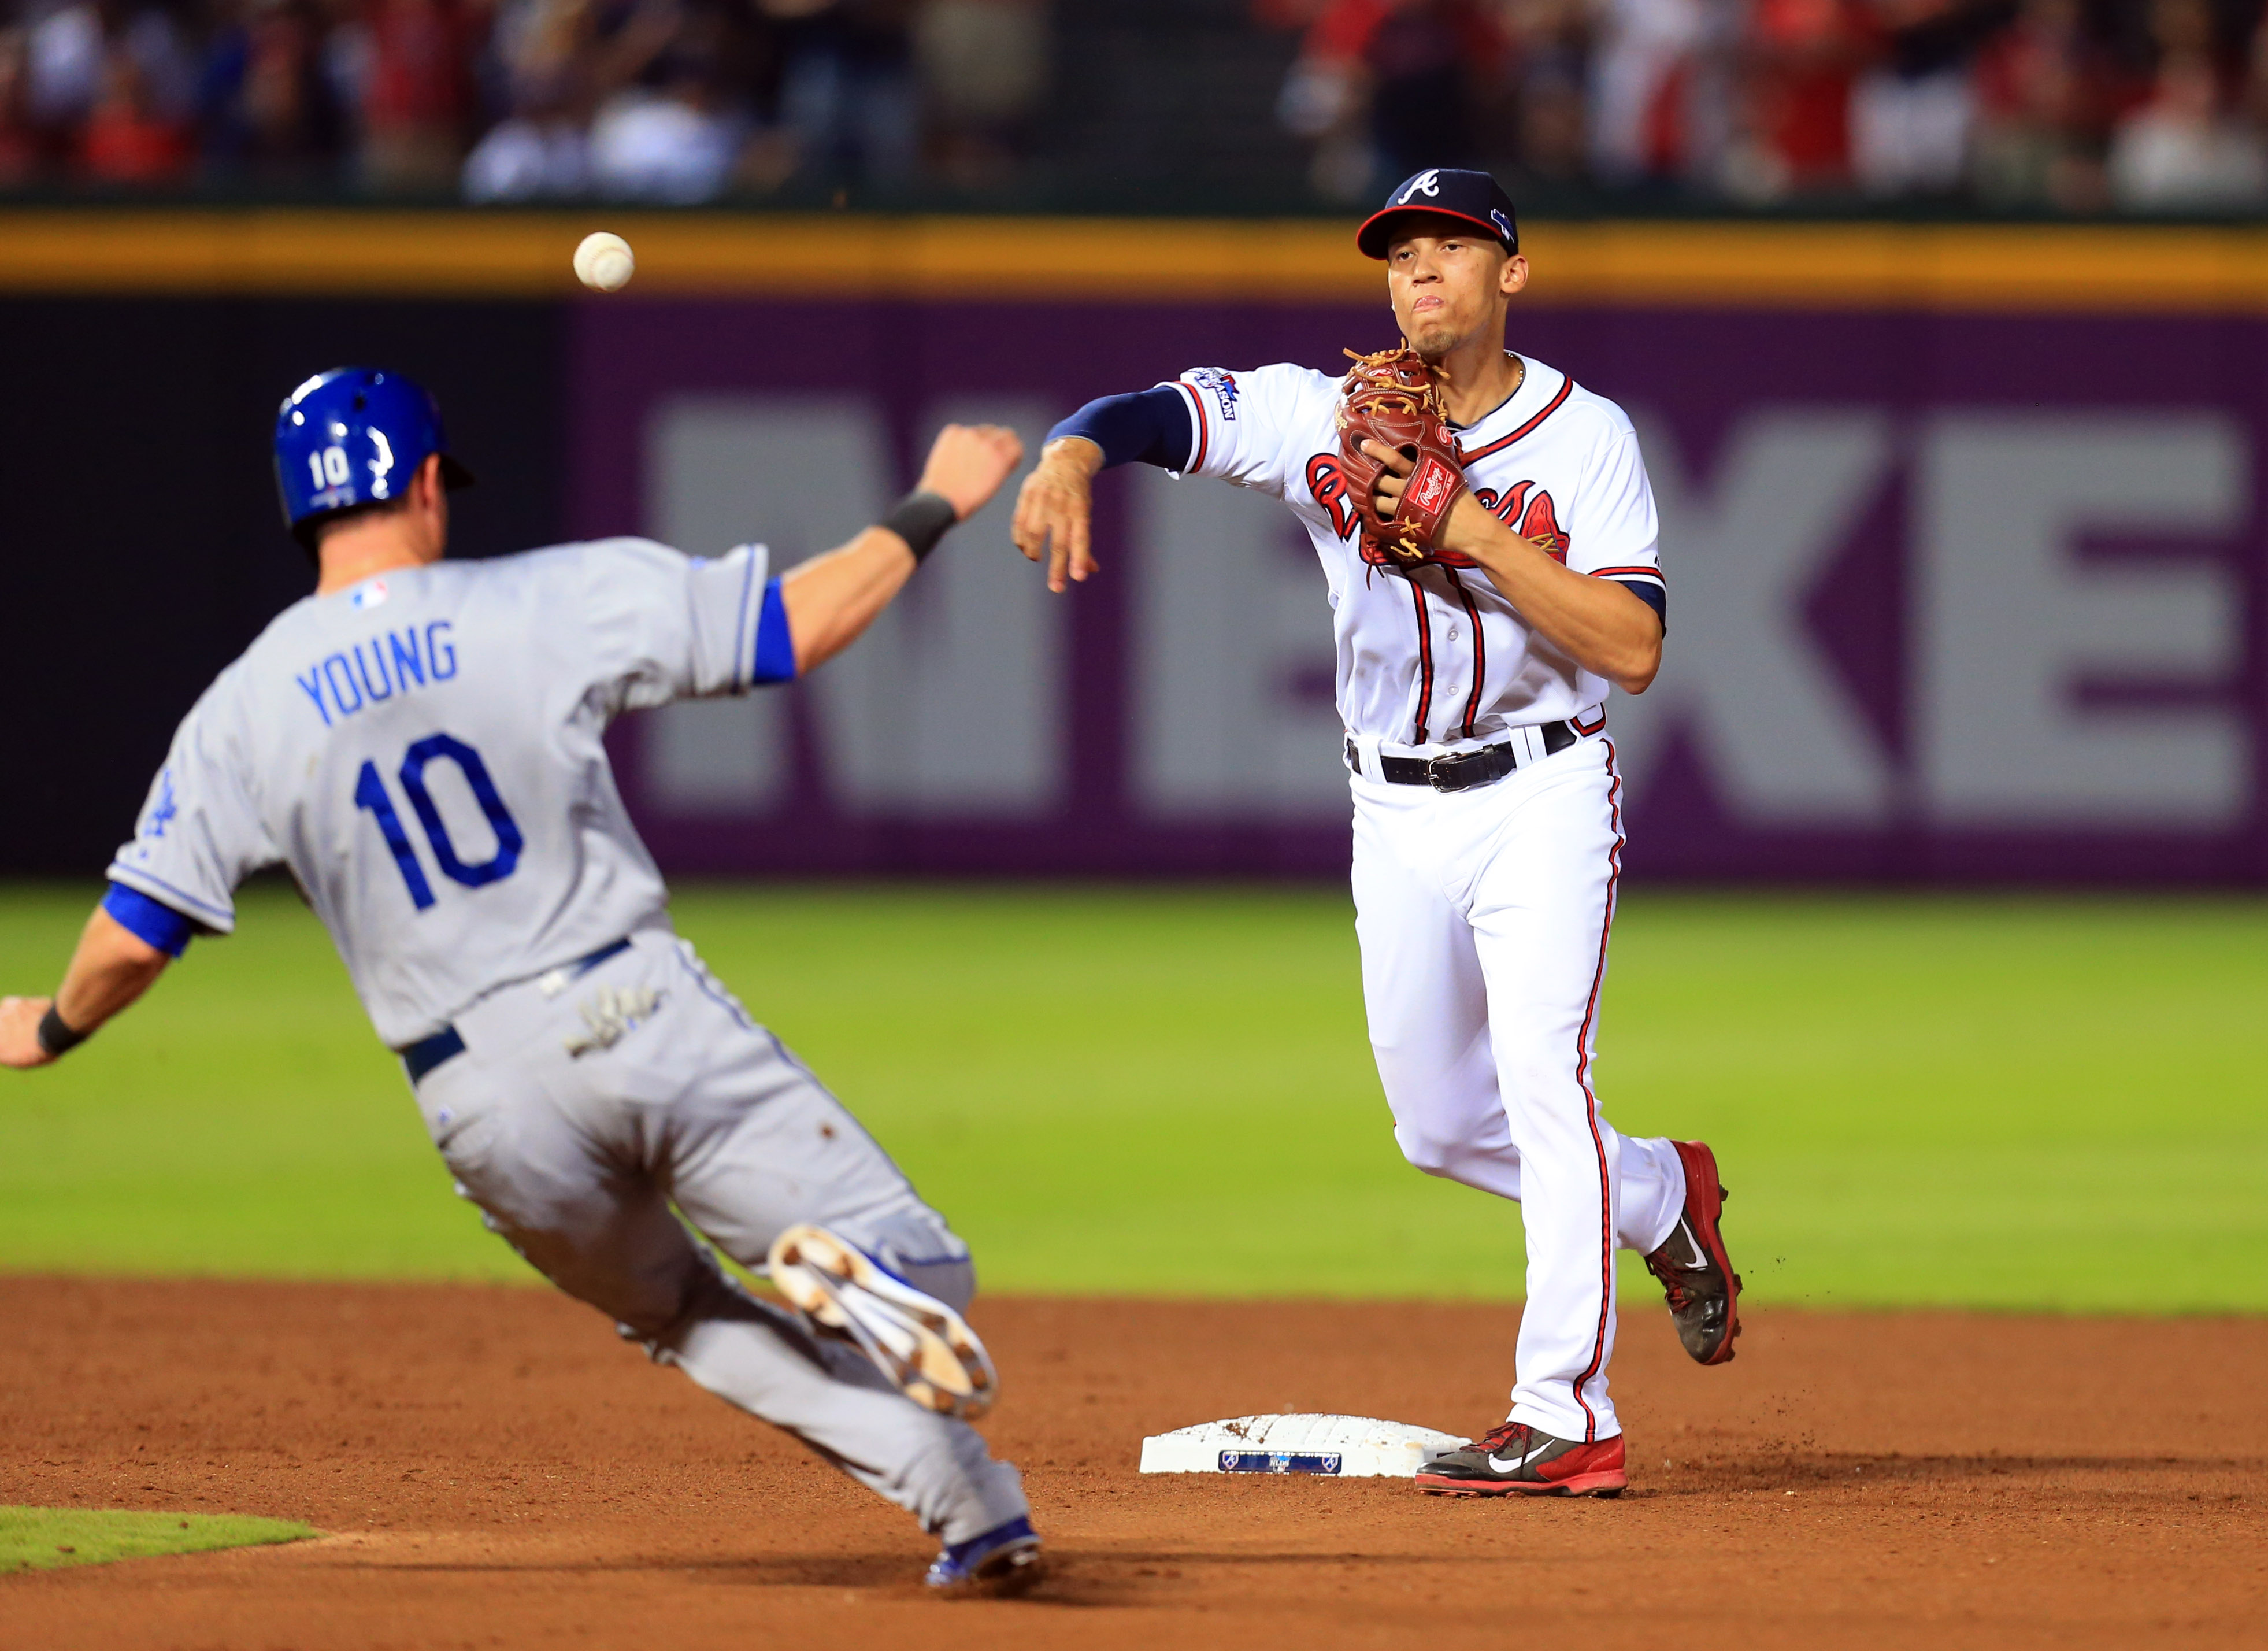 7471902-mlb-nlds-los-angeles-dodgers-at-atlanta-braves